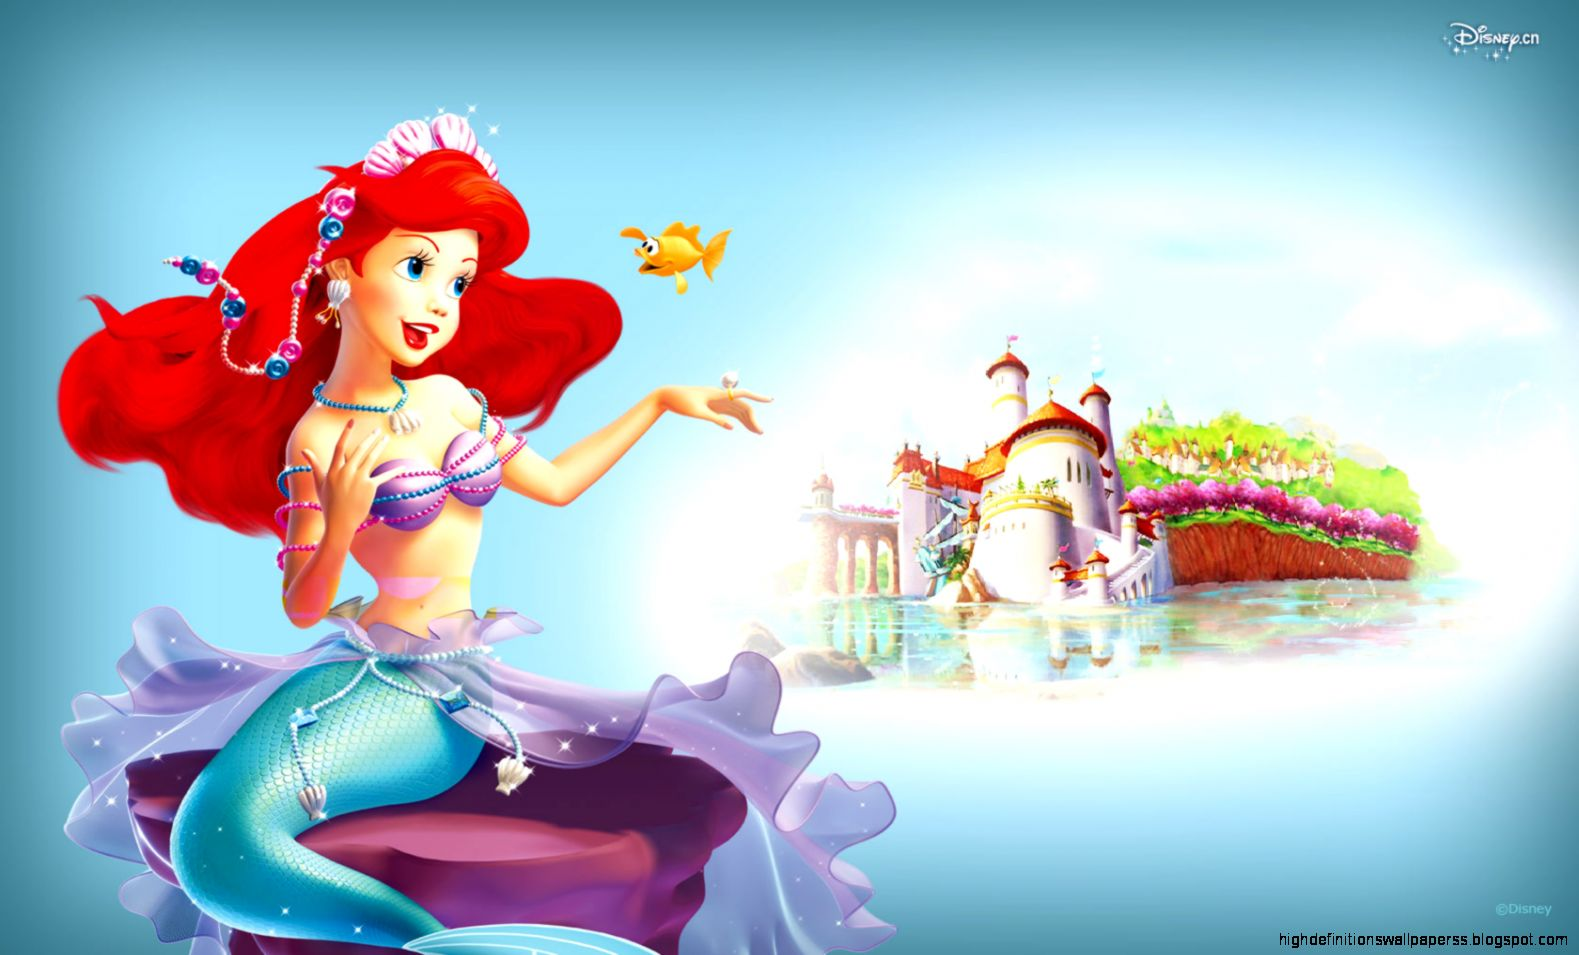 Princes Cartoons Images Wallpapers Hd | High Definitions ...